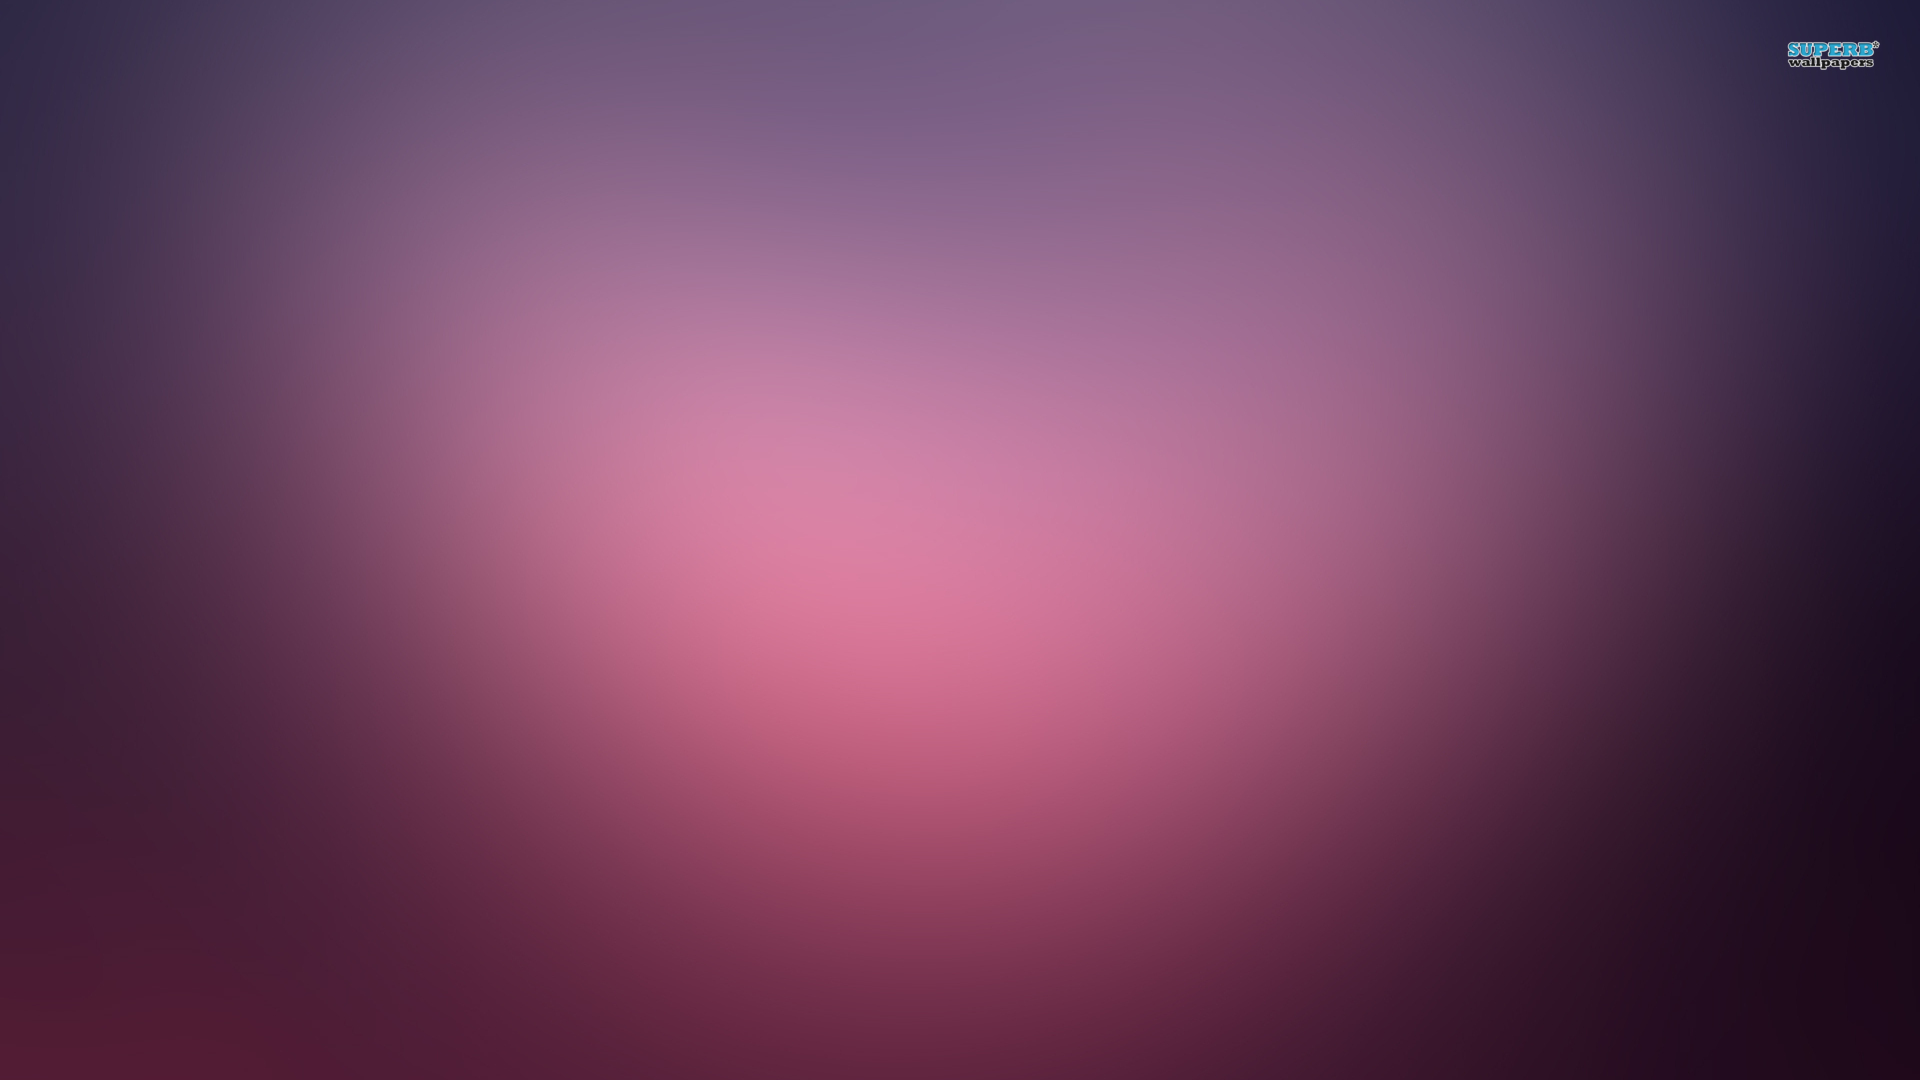 light pink apple wallpaper